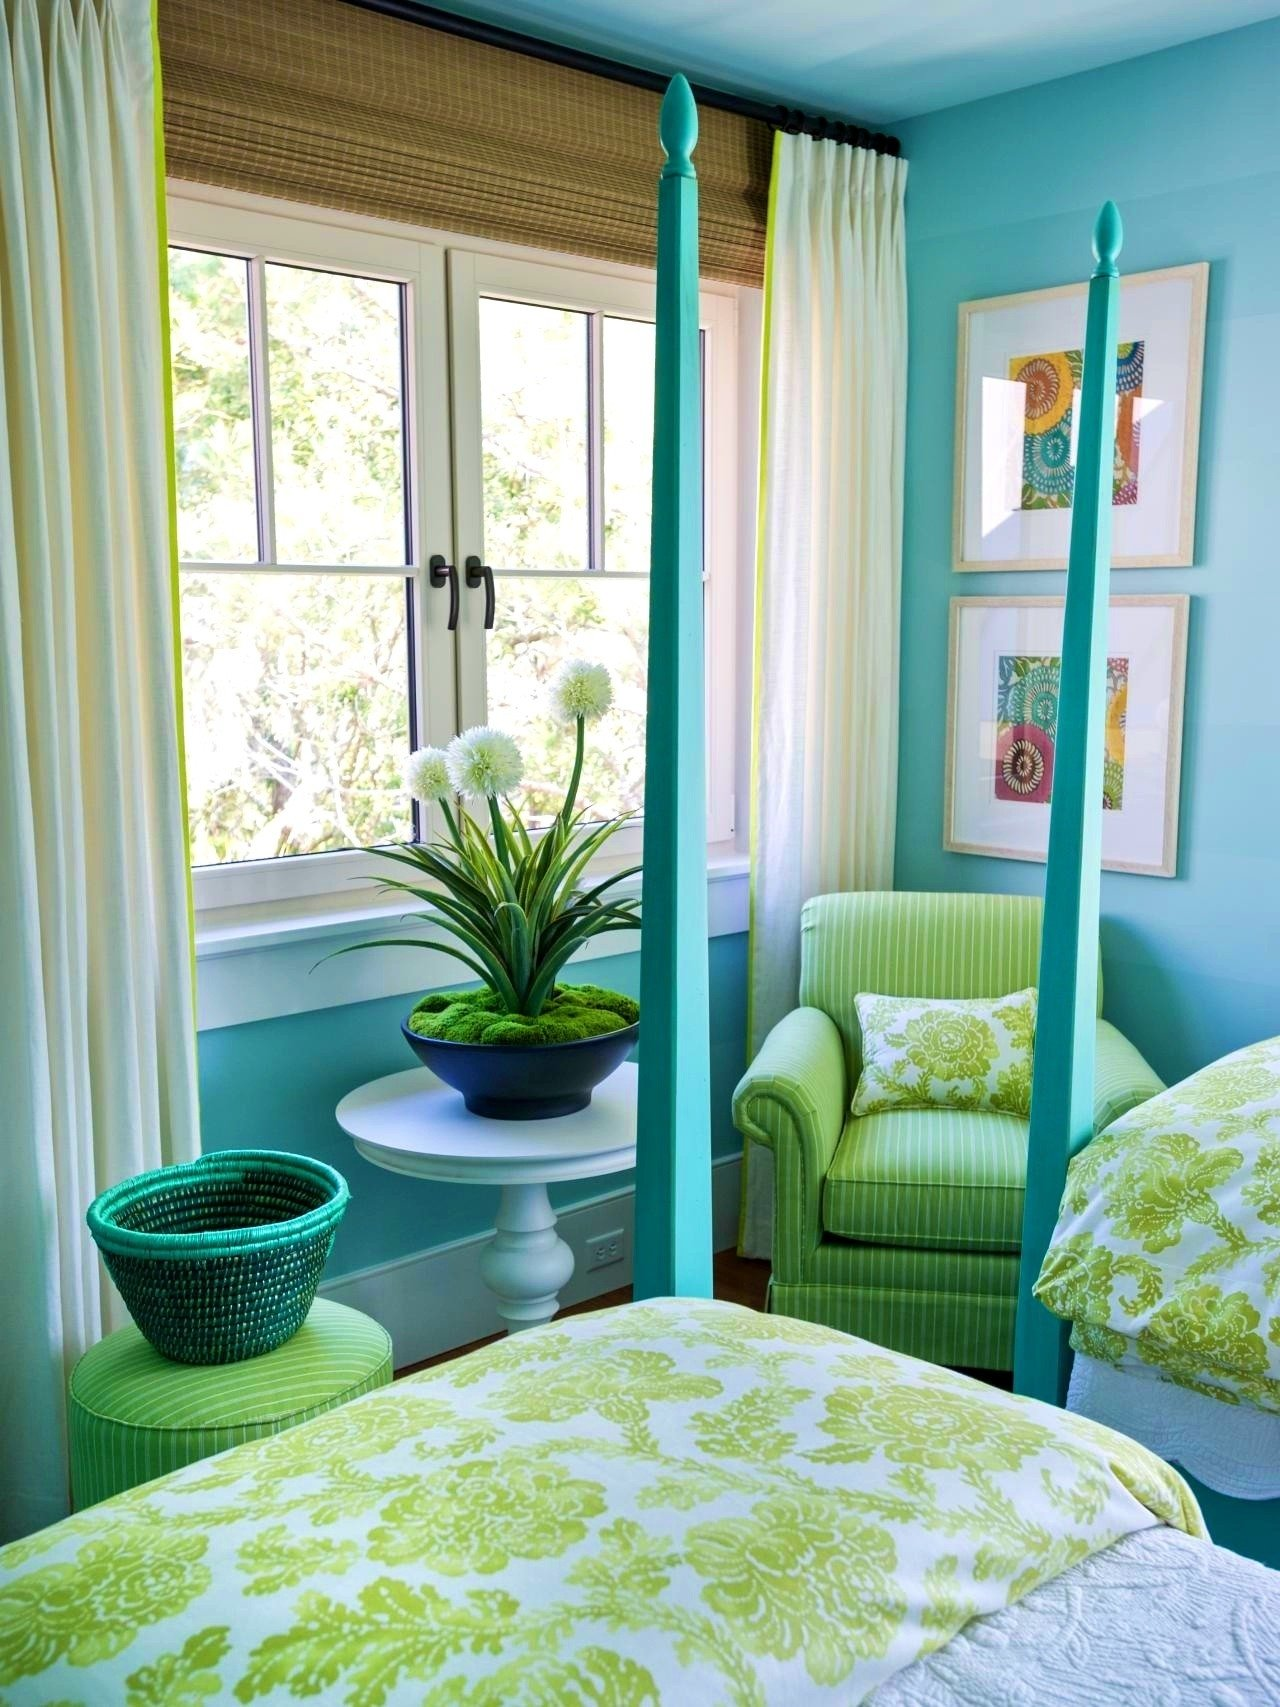 10 Attractive Blue And Green Bedroom Ideas blue and green bedroom decorating ideas new bedroom que blue green 2021